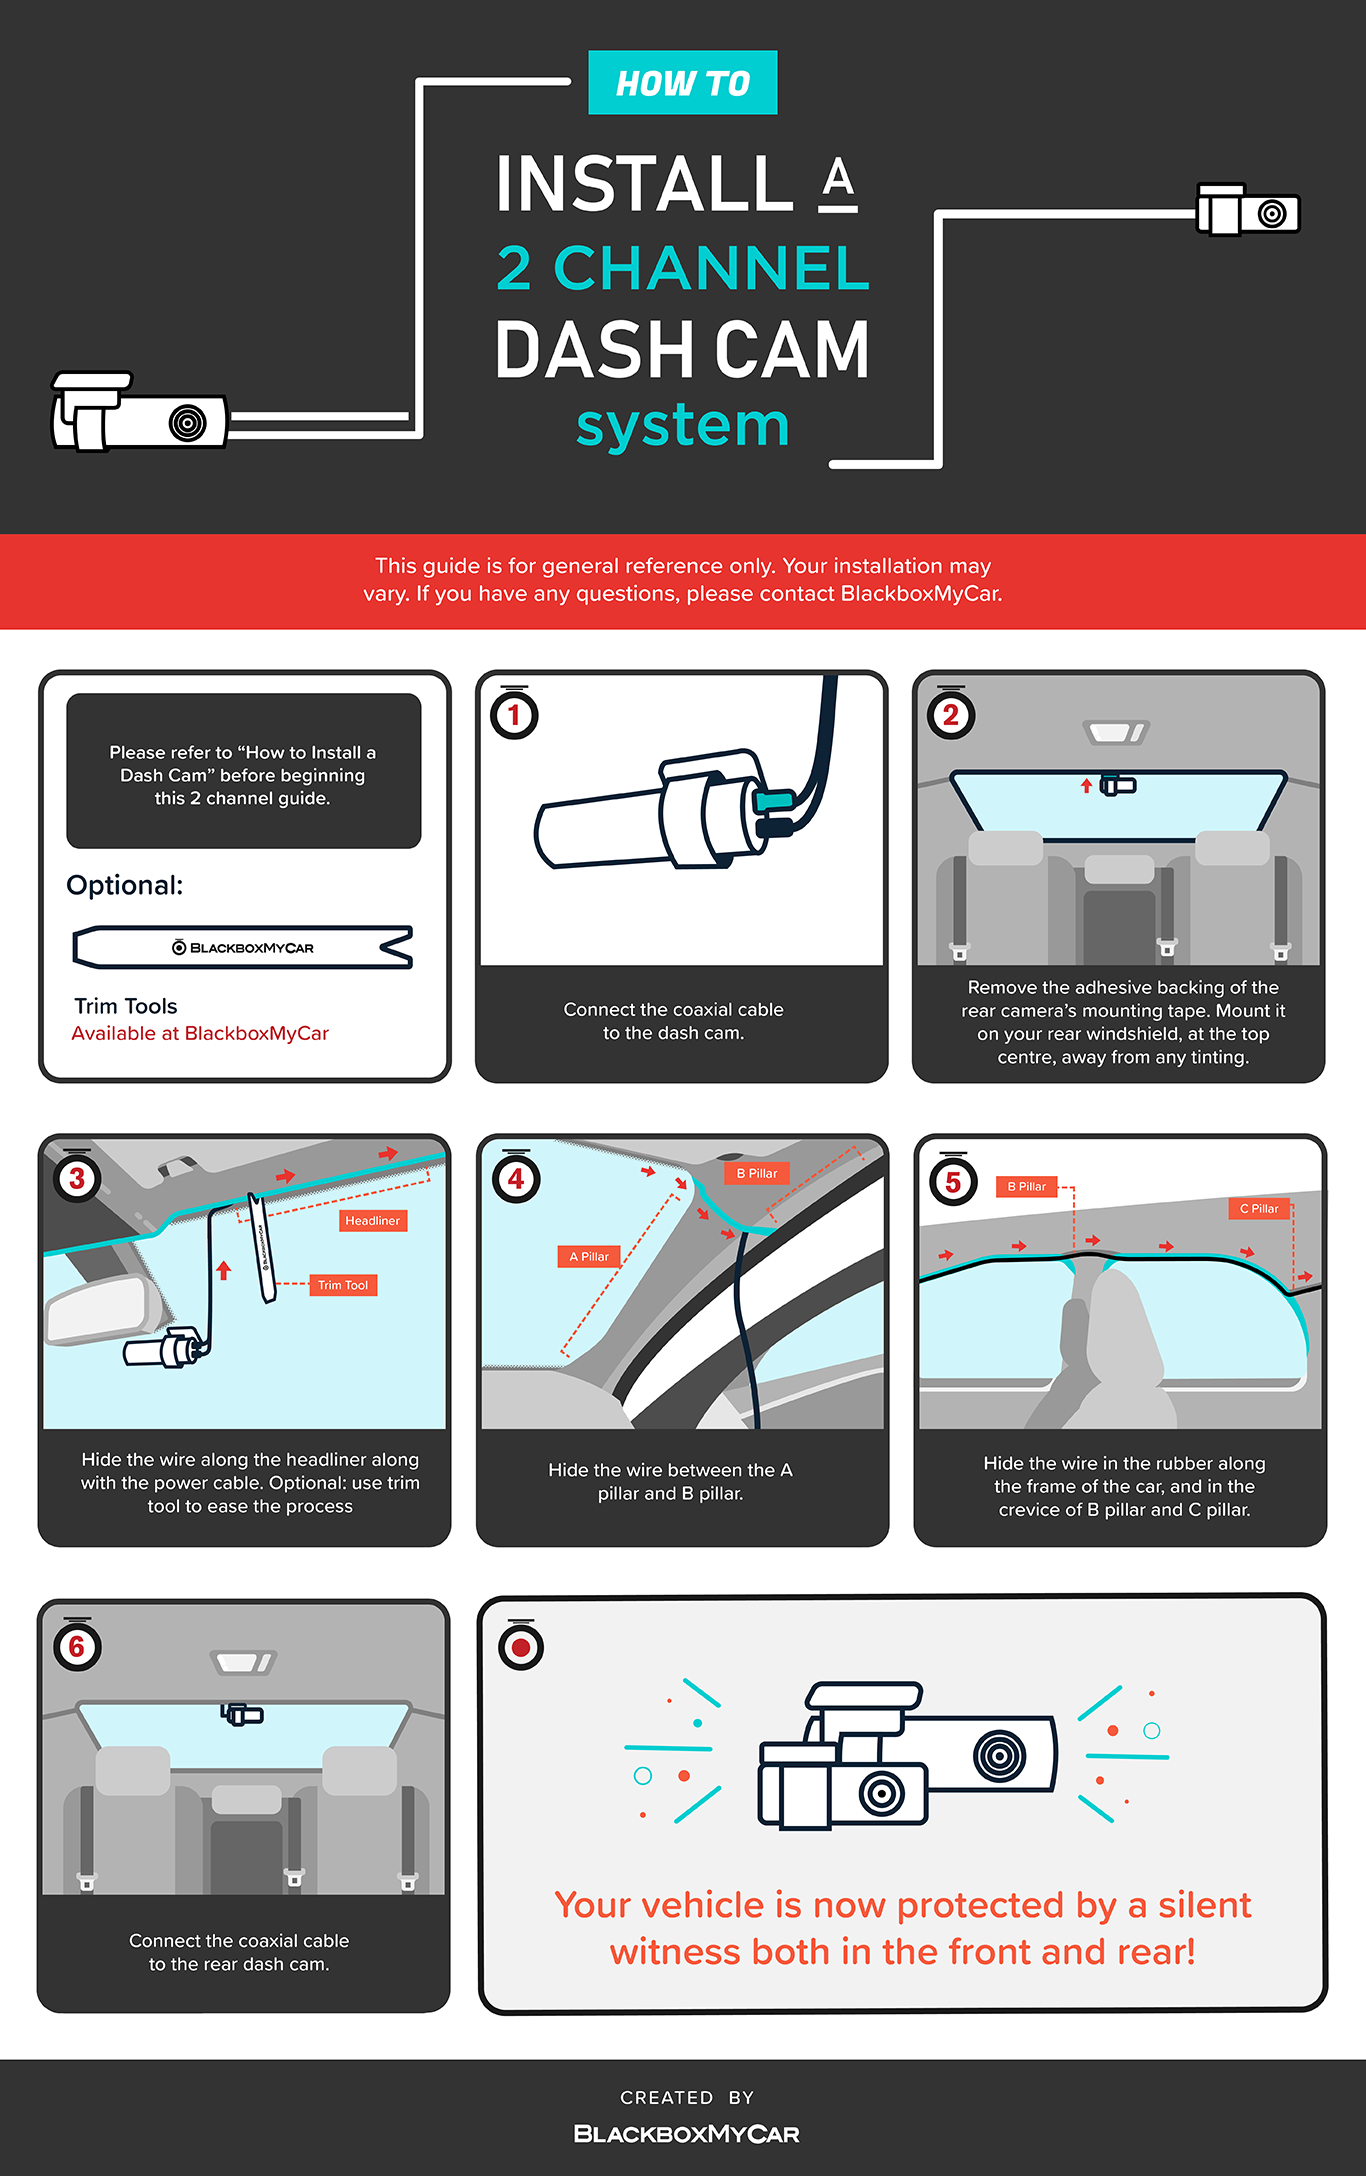 How to: Infographic Series #4 - Install 2 Channel Dash Cams